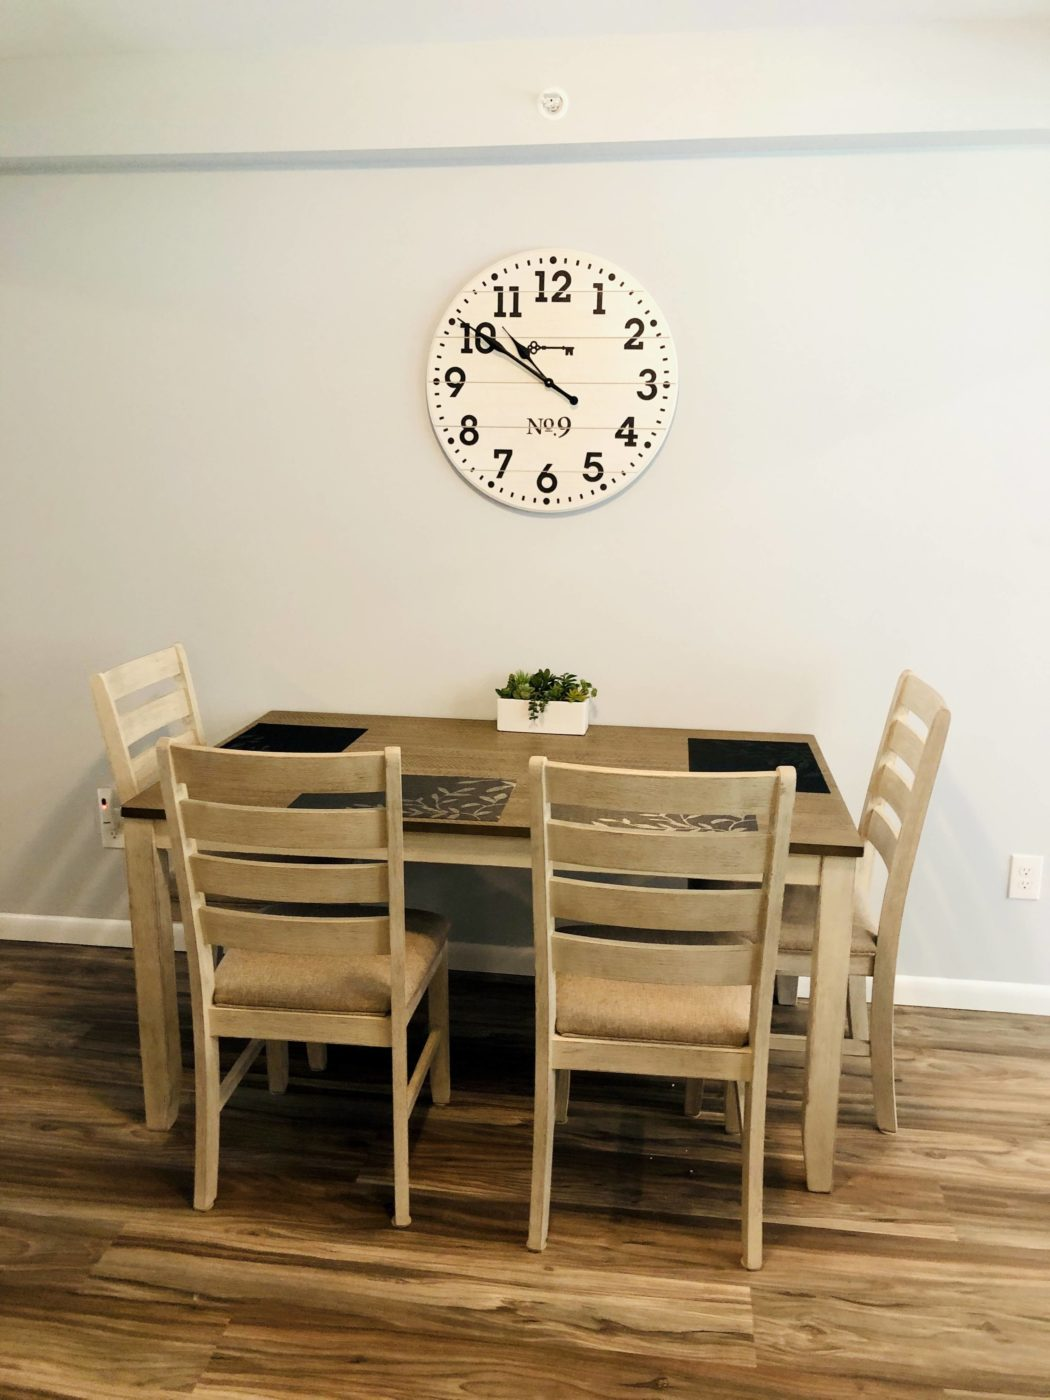 A family space for meals creates a sense of home.